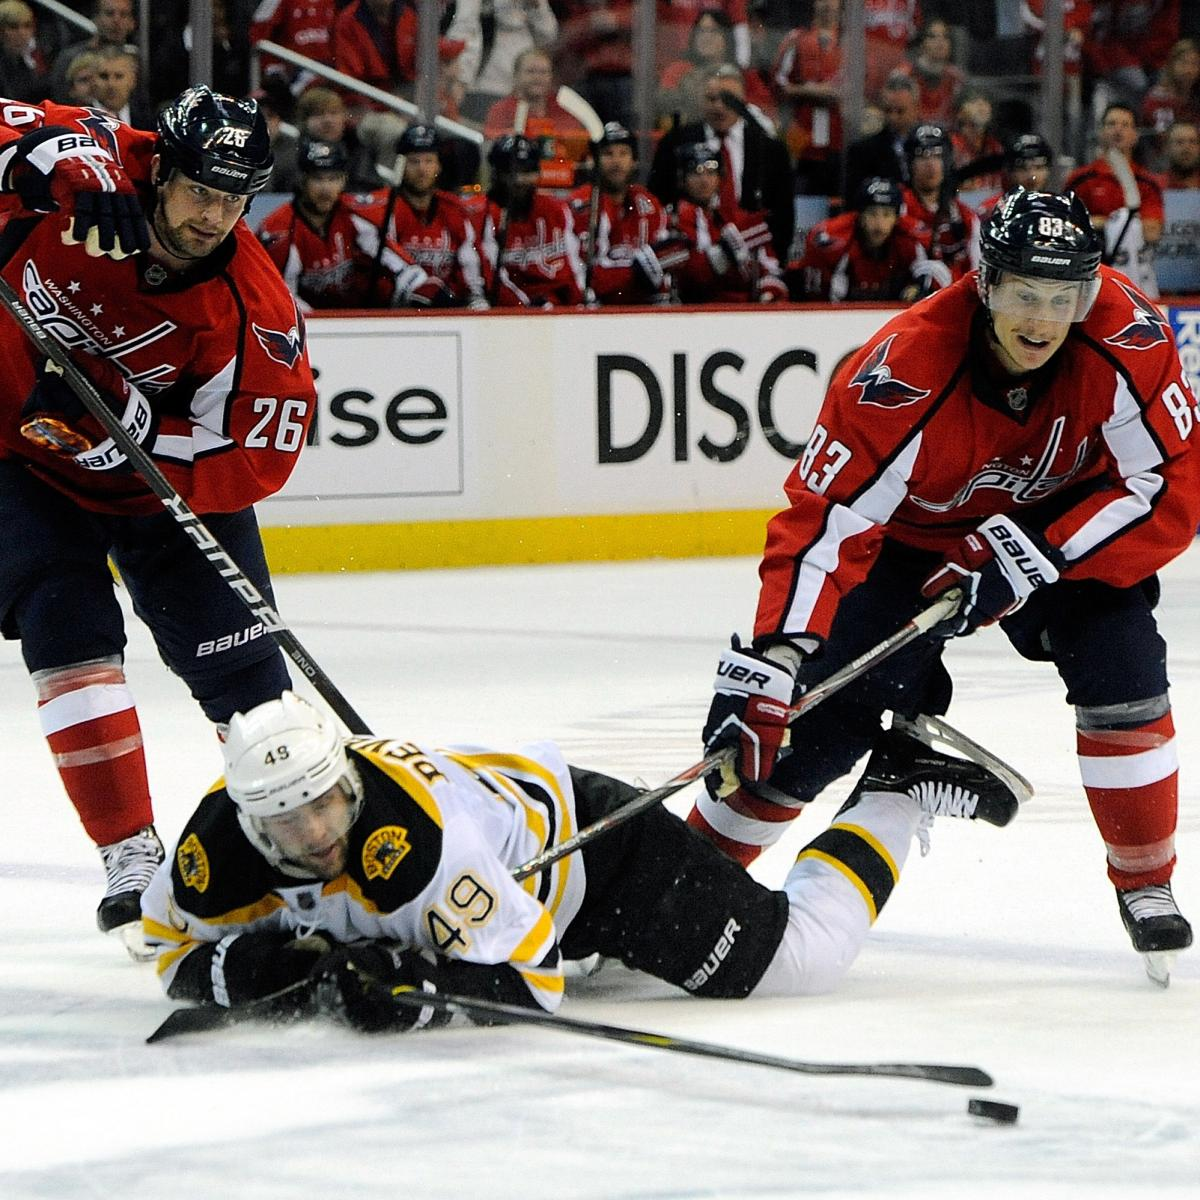 Bruins Vs. Capitals: Highlights, Twitter Reaction And